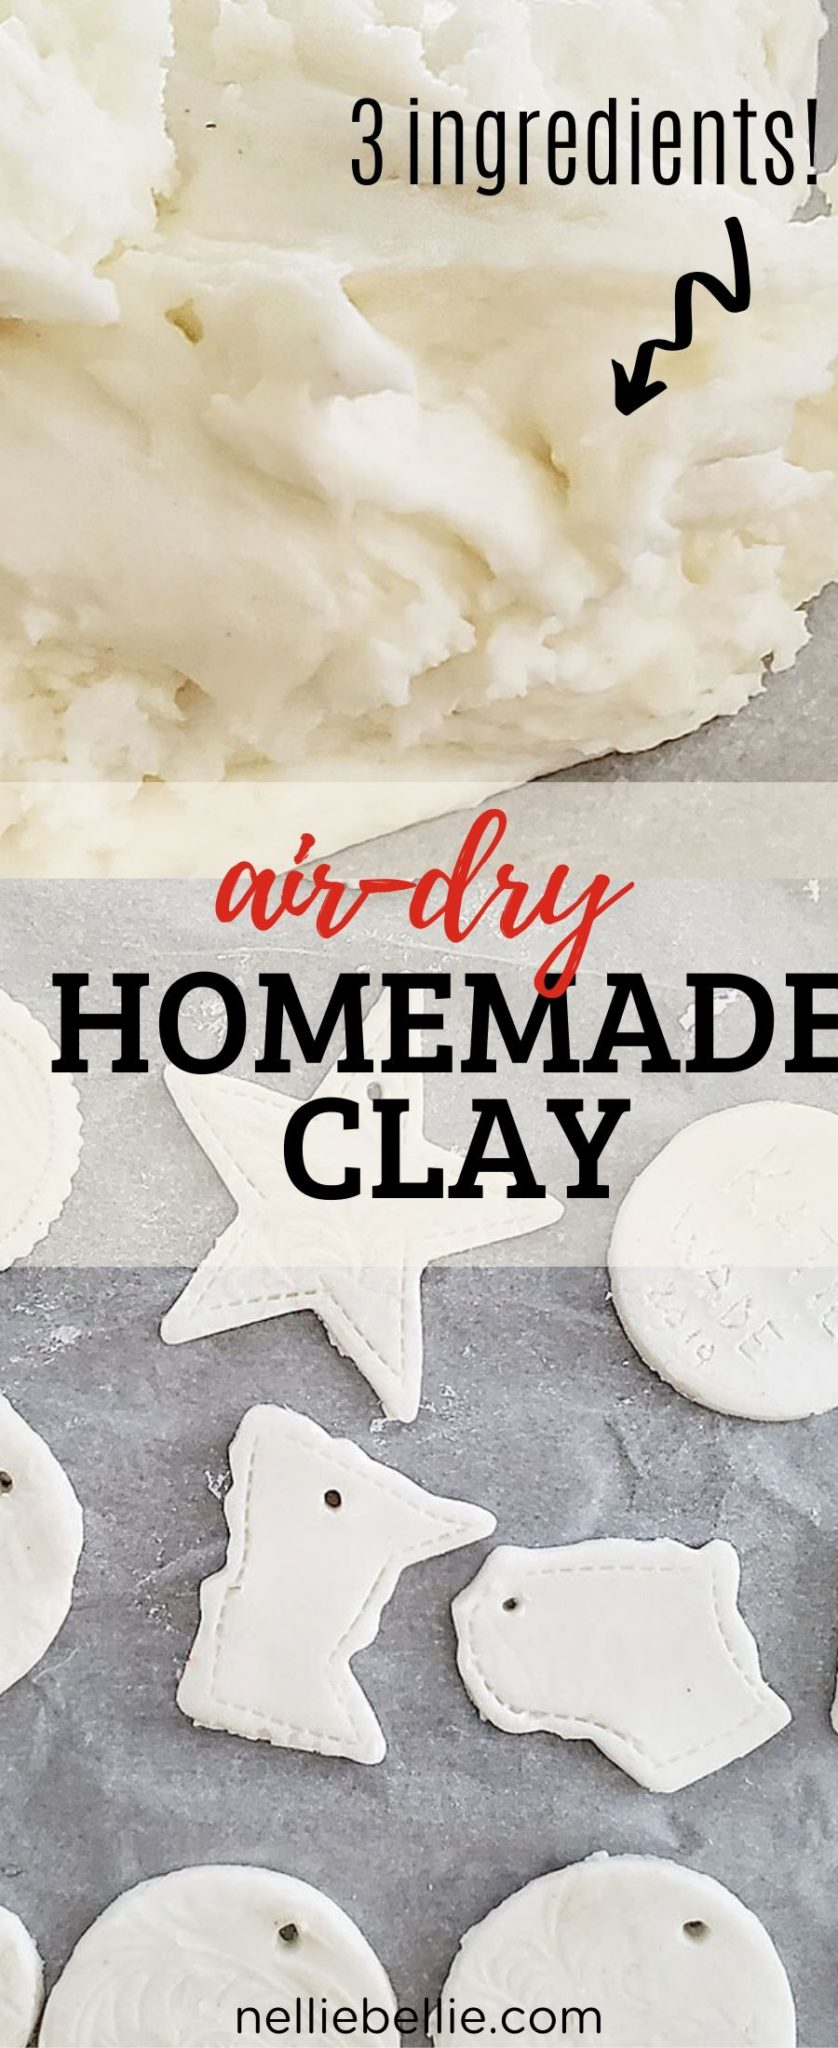 How to make your own DIY air dry clay recipe perfect for crafts, projects, and kids. And ideas for easy gifts and projects to make with it. Video included! #clay #DIY #airdry #recipe